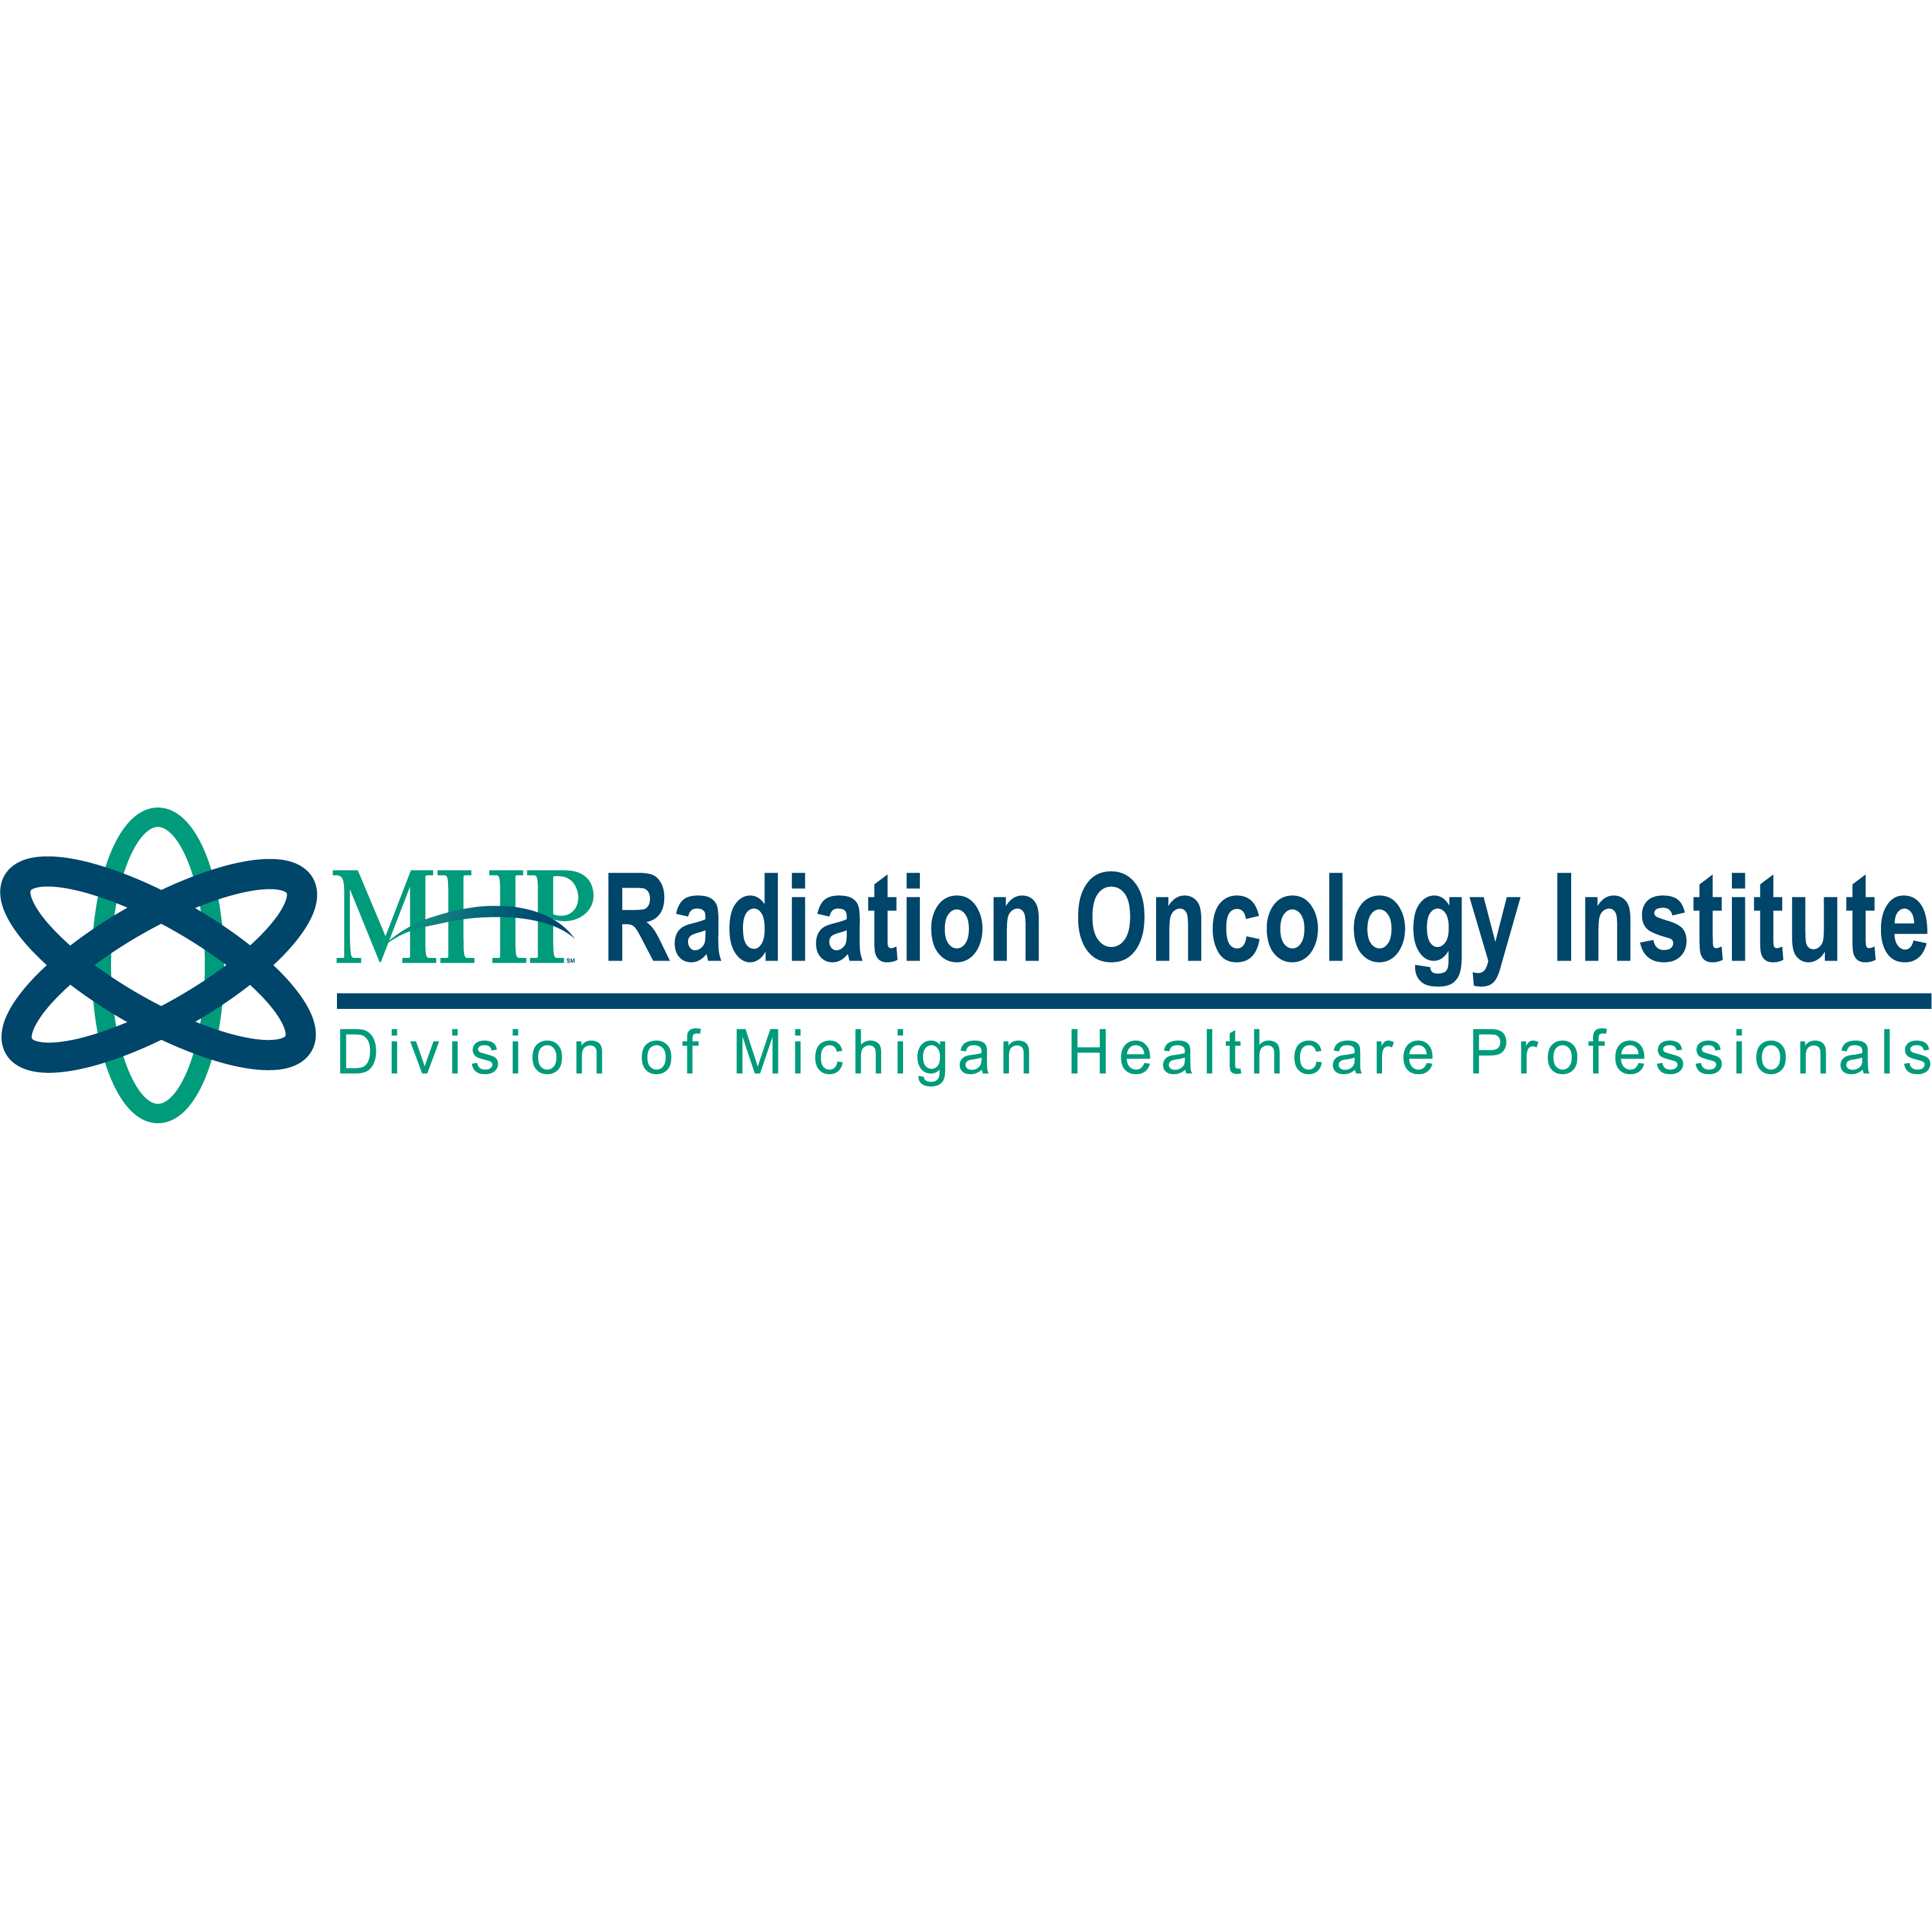 MHP Radiation Oncology Institute